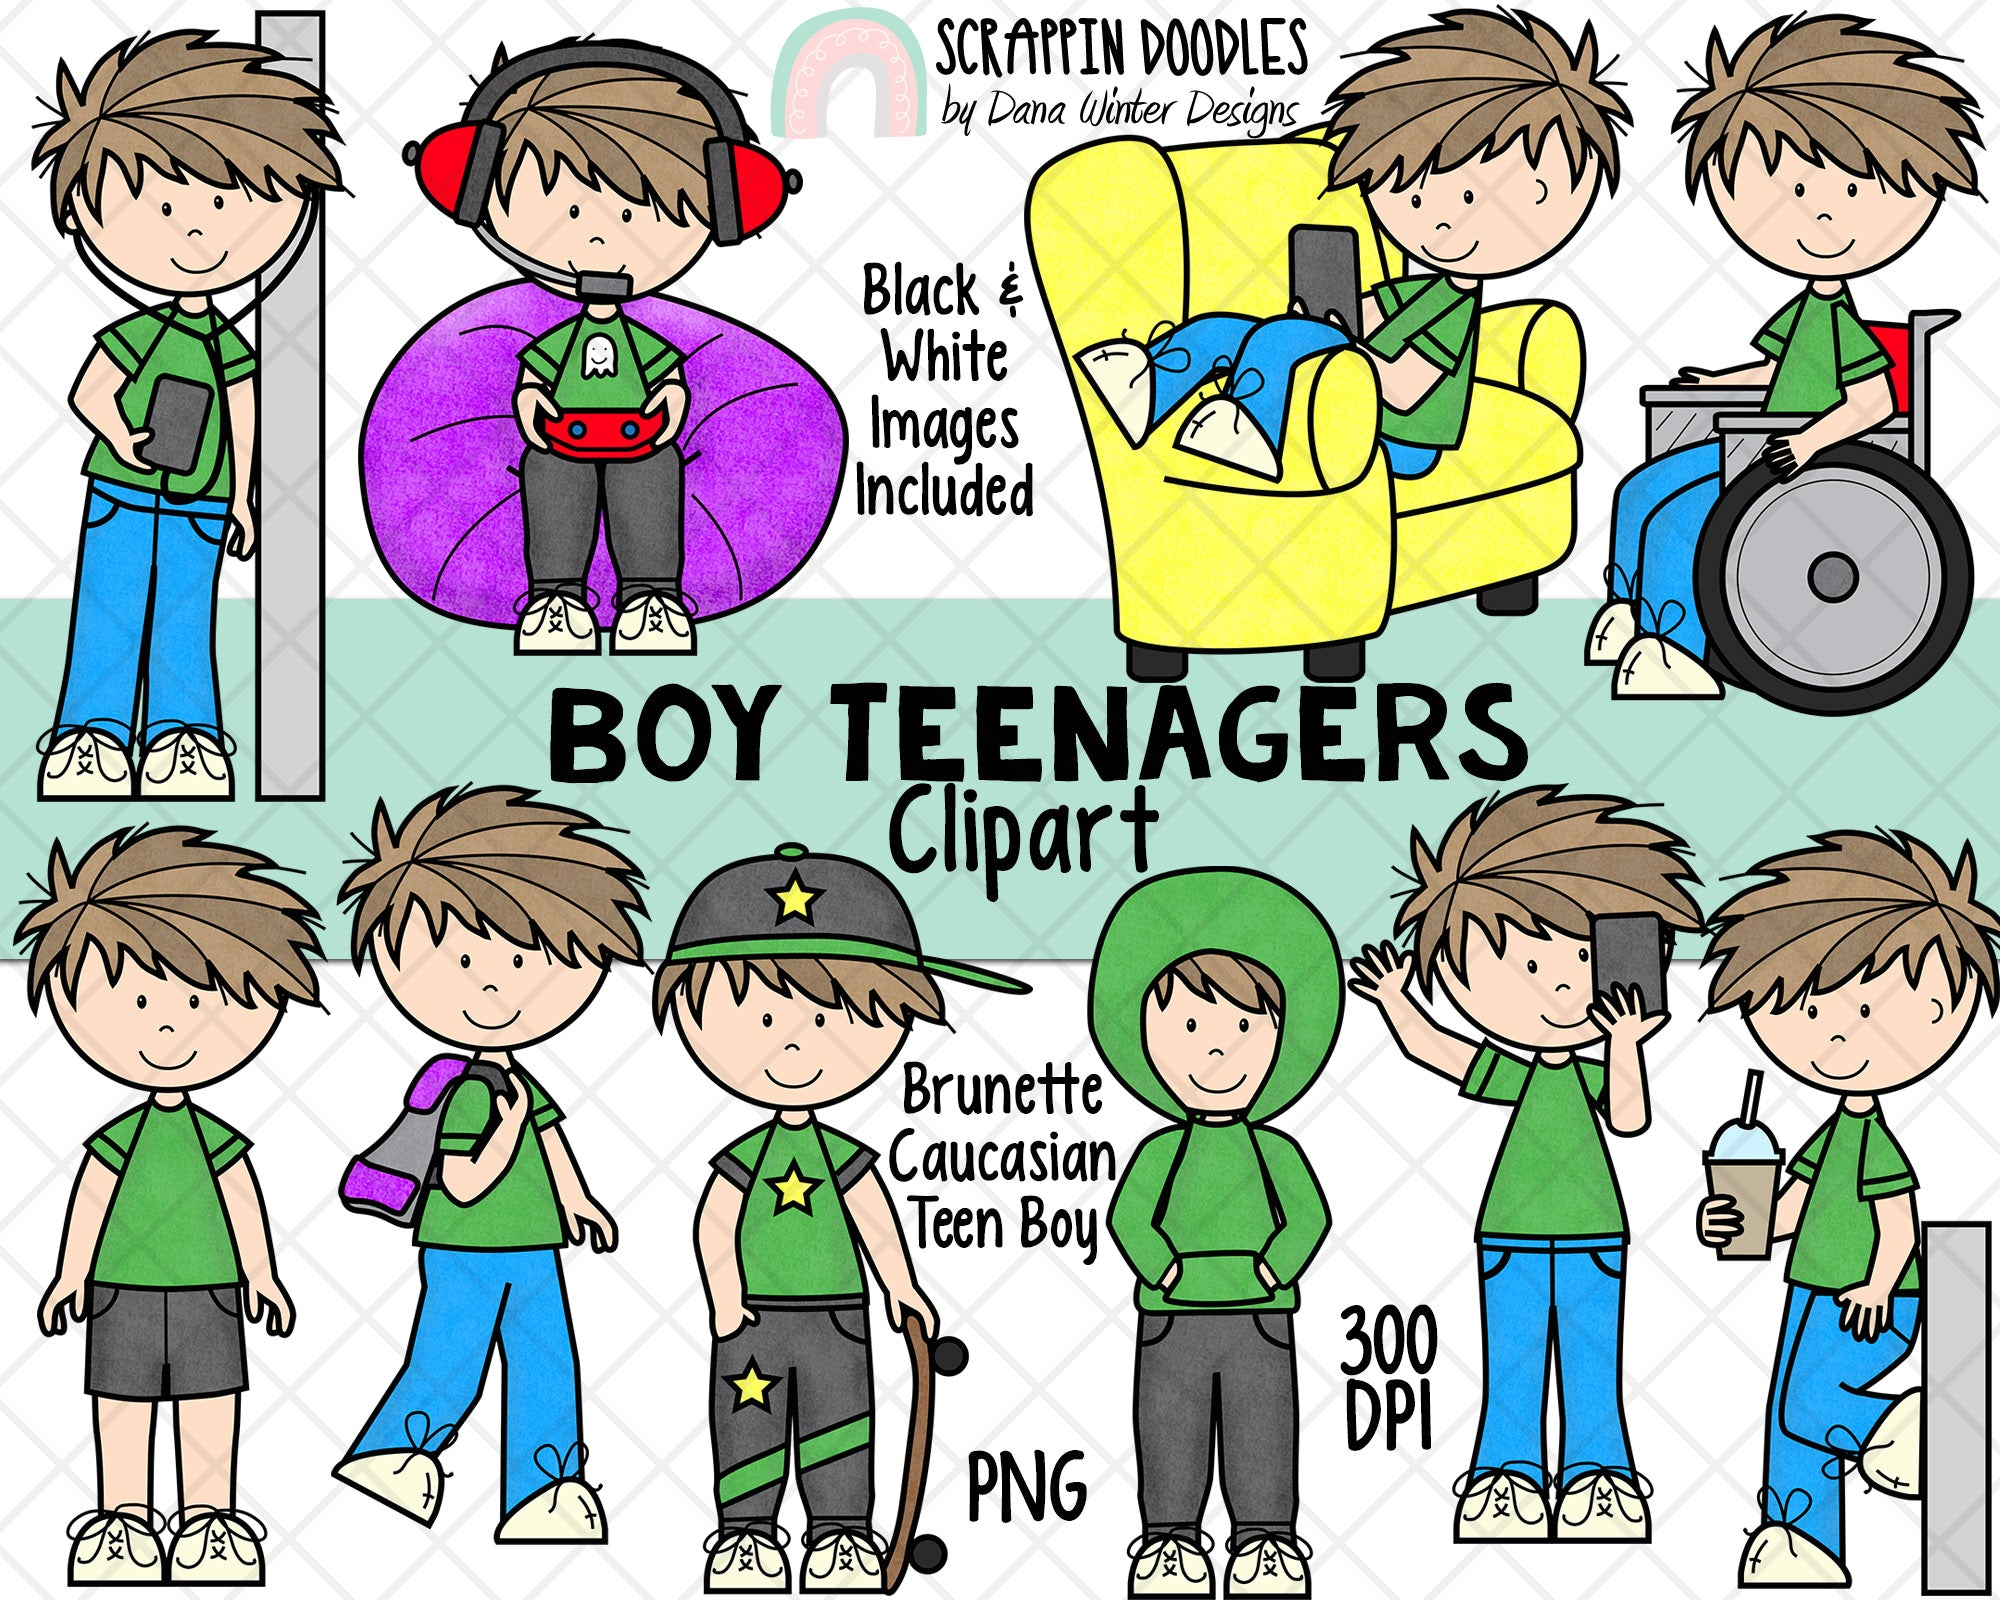 Teenager ClipArt - Teenage Boys - Student Clipart - Caucasian Brunette Hair